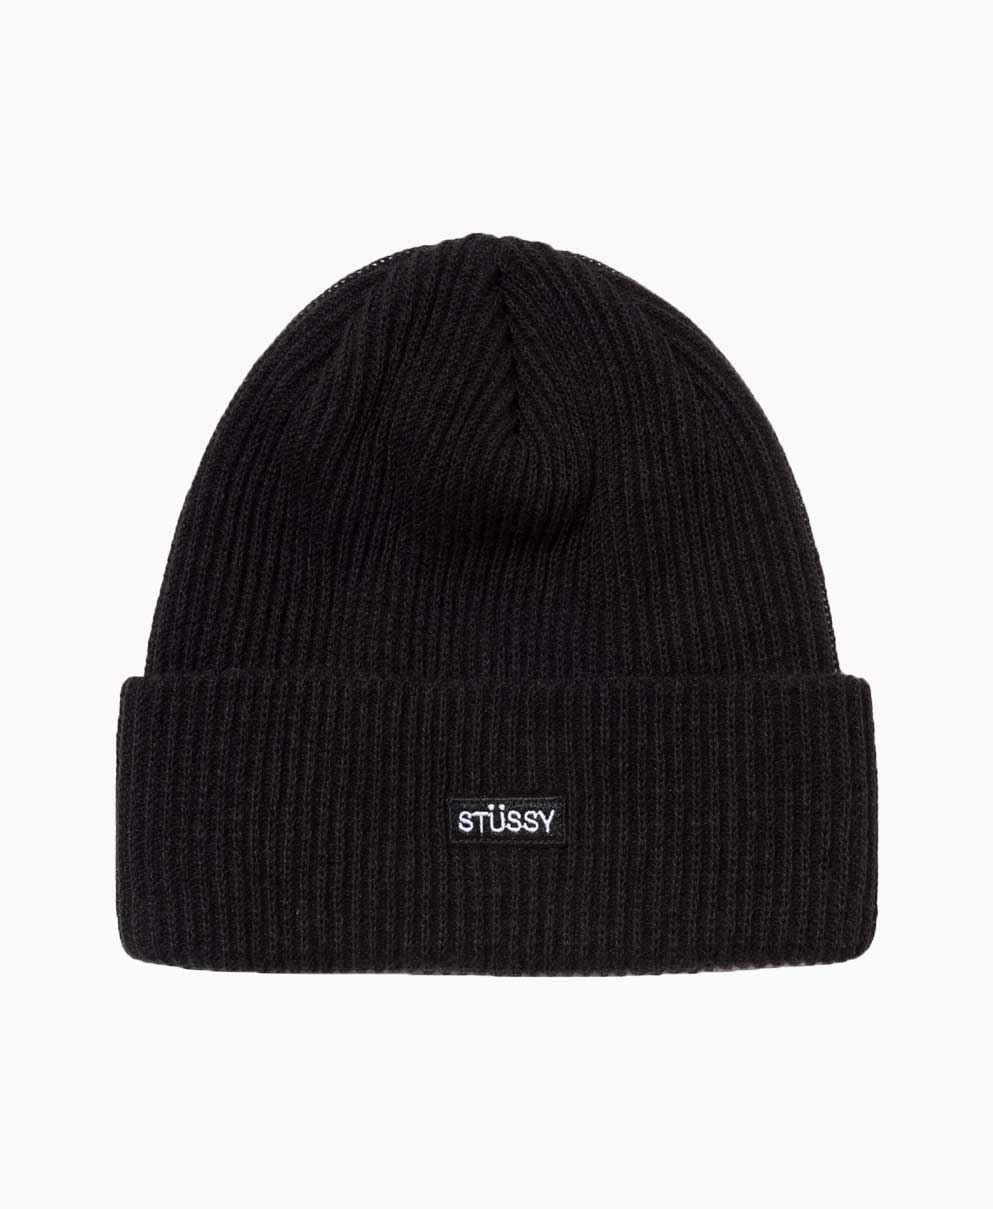 Stussy Small Patch Watchcap Beanie Black Front